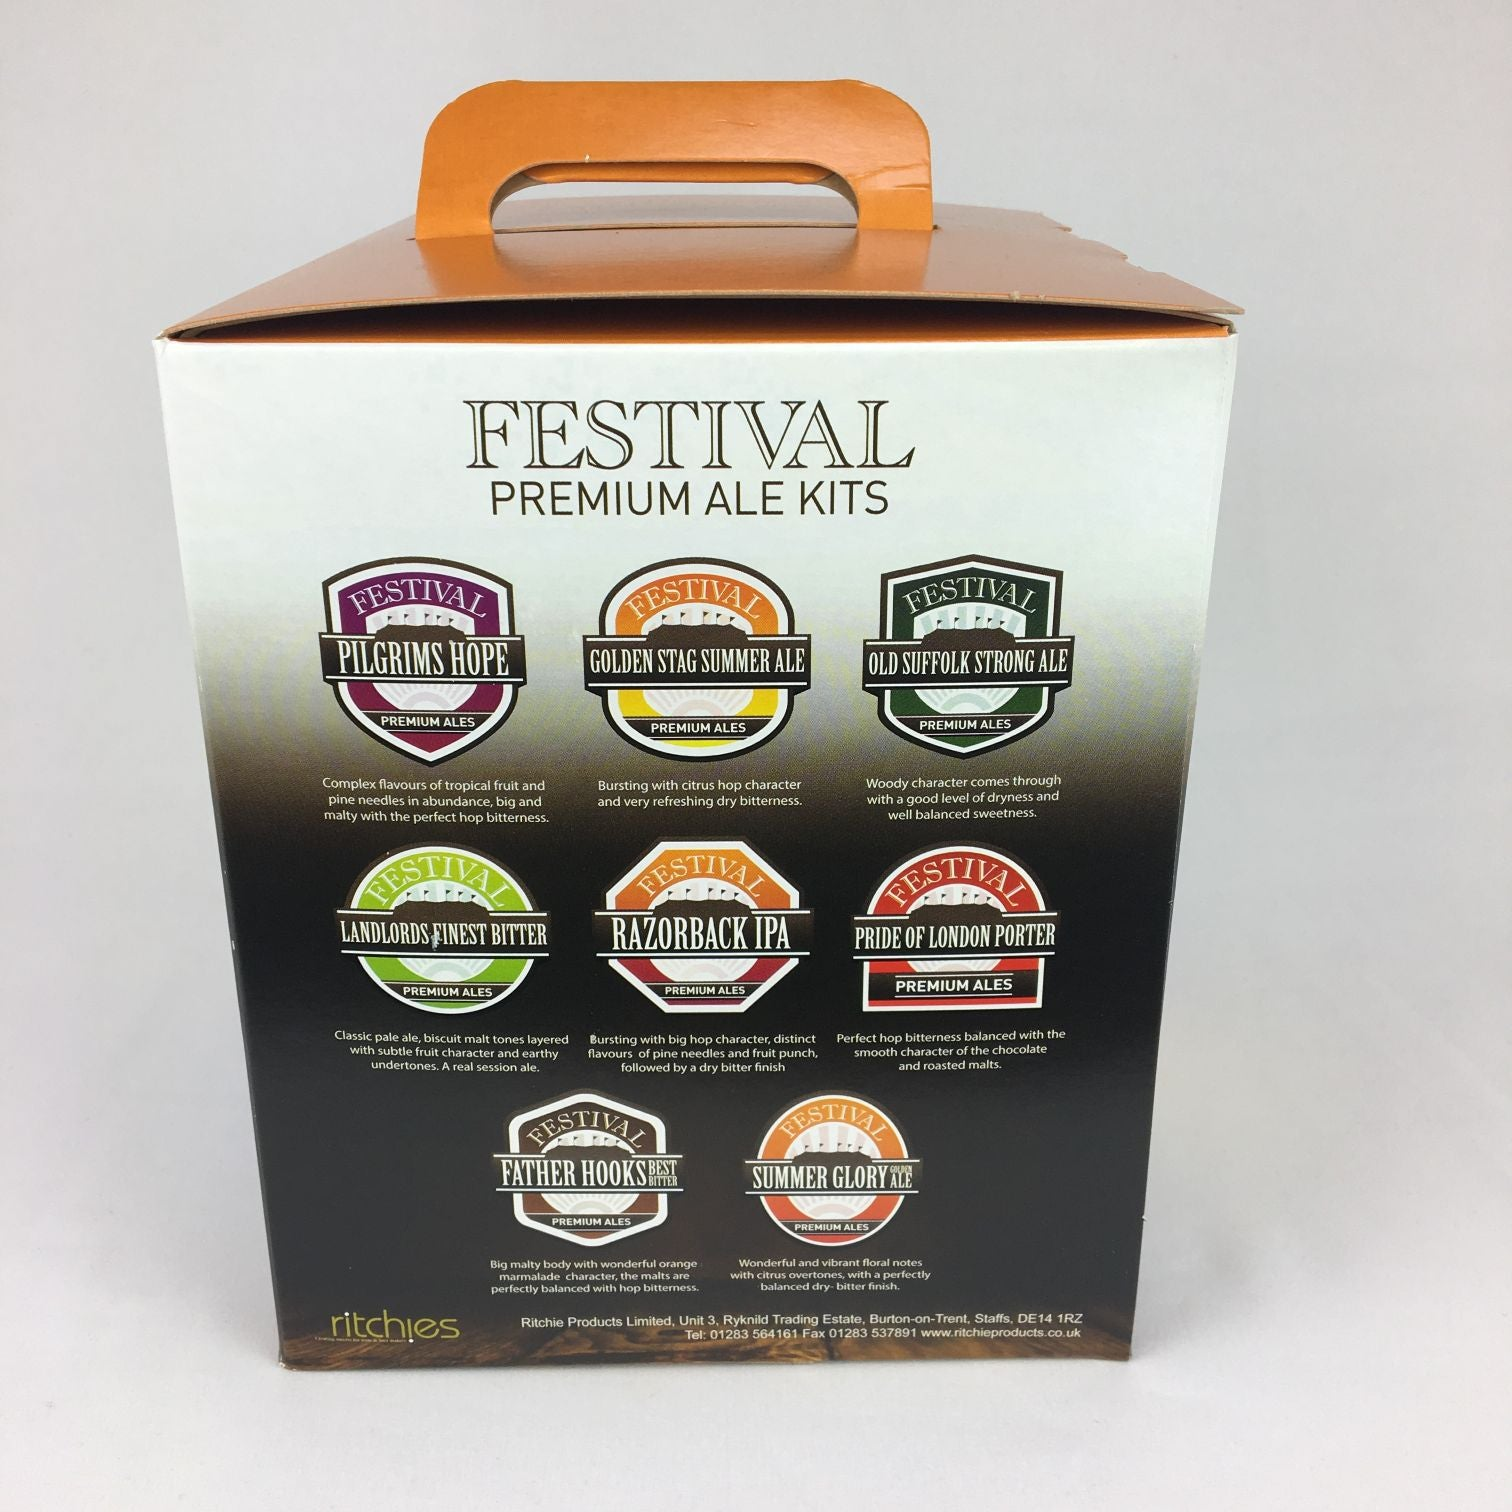 Festival Summer Glory Golden Ale Refill Kit